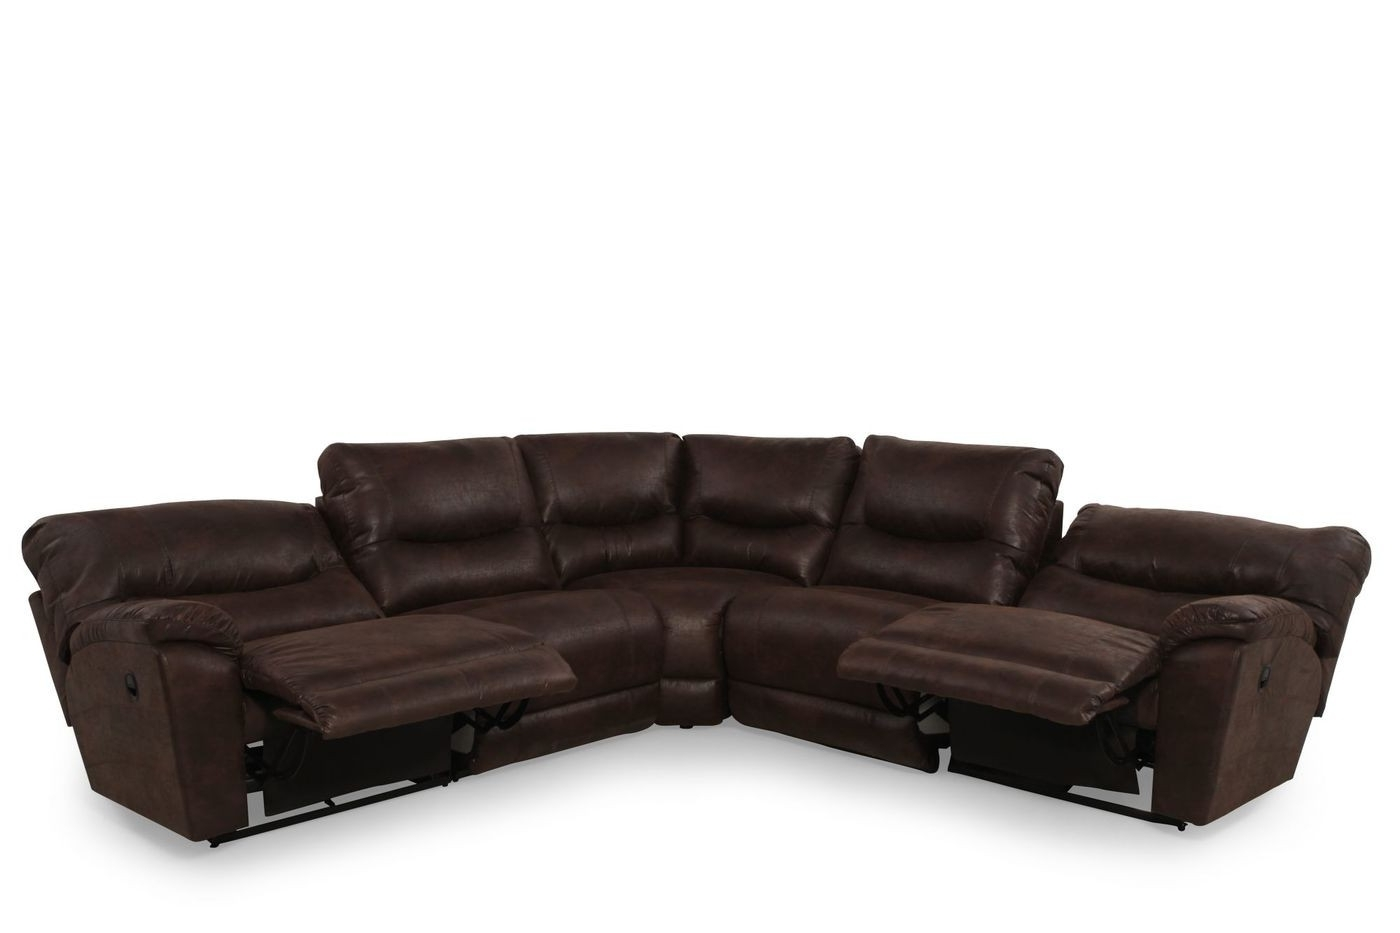 1025theparty For Mathis Brothers Sectional Sofas (View 11 of 20)